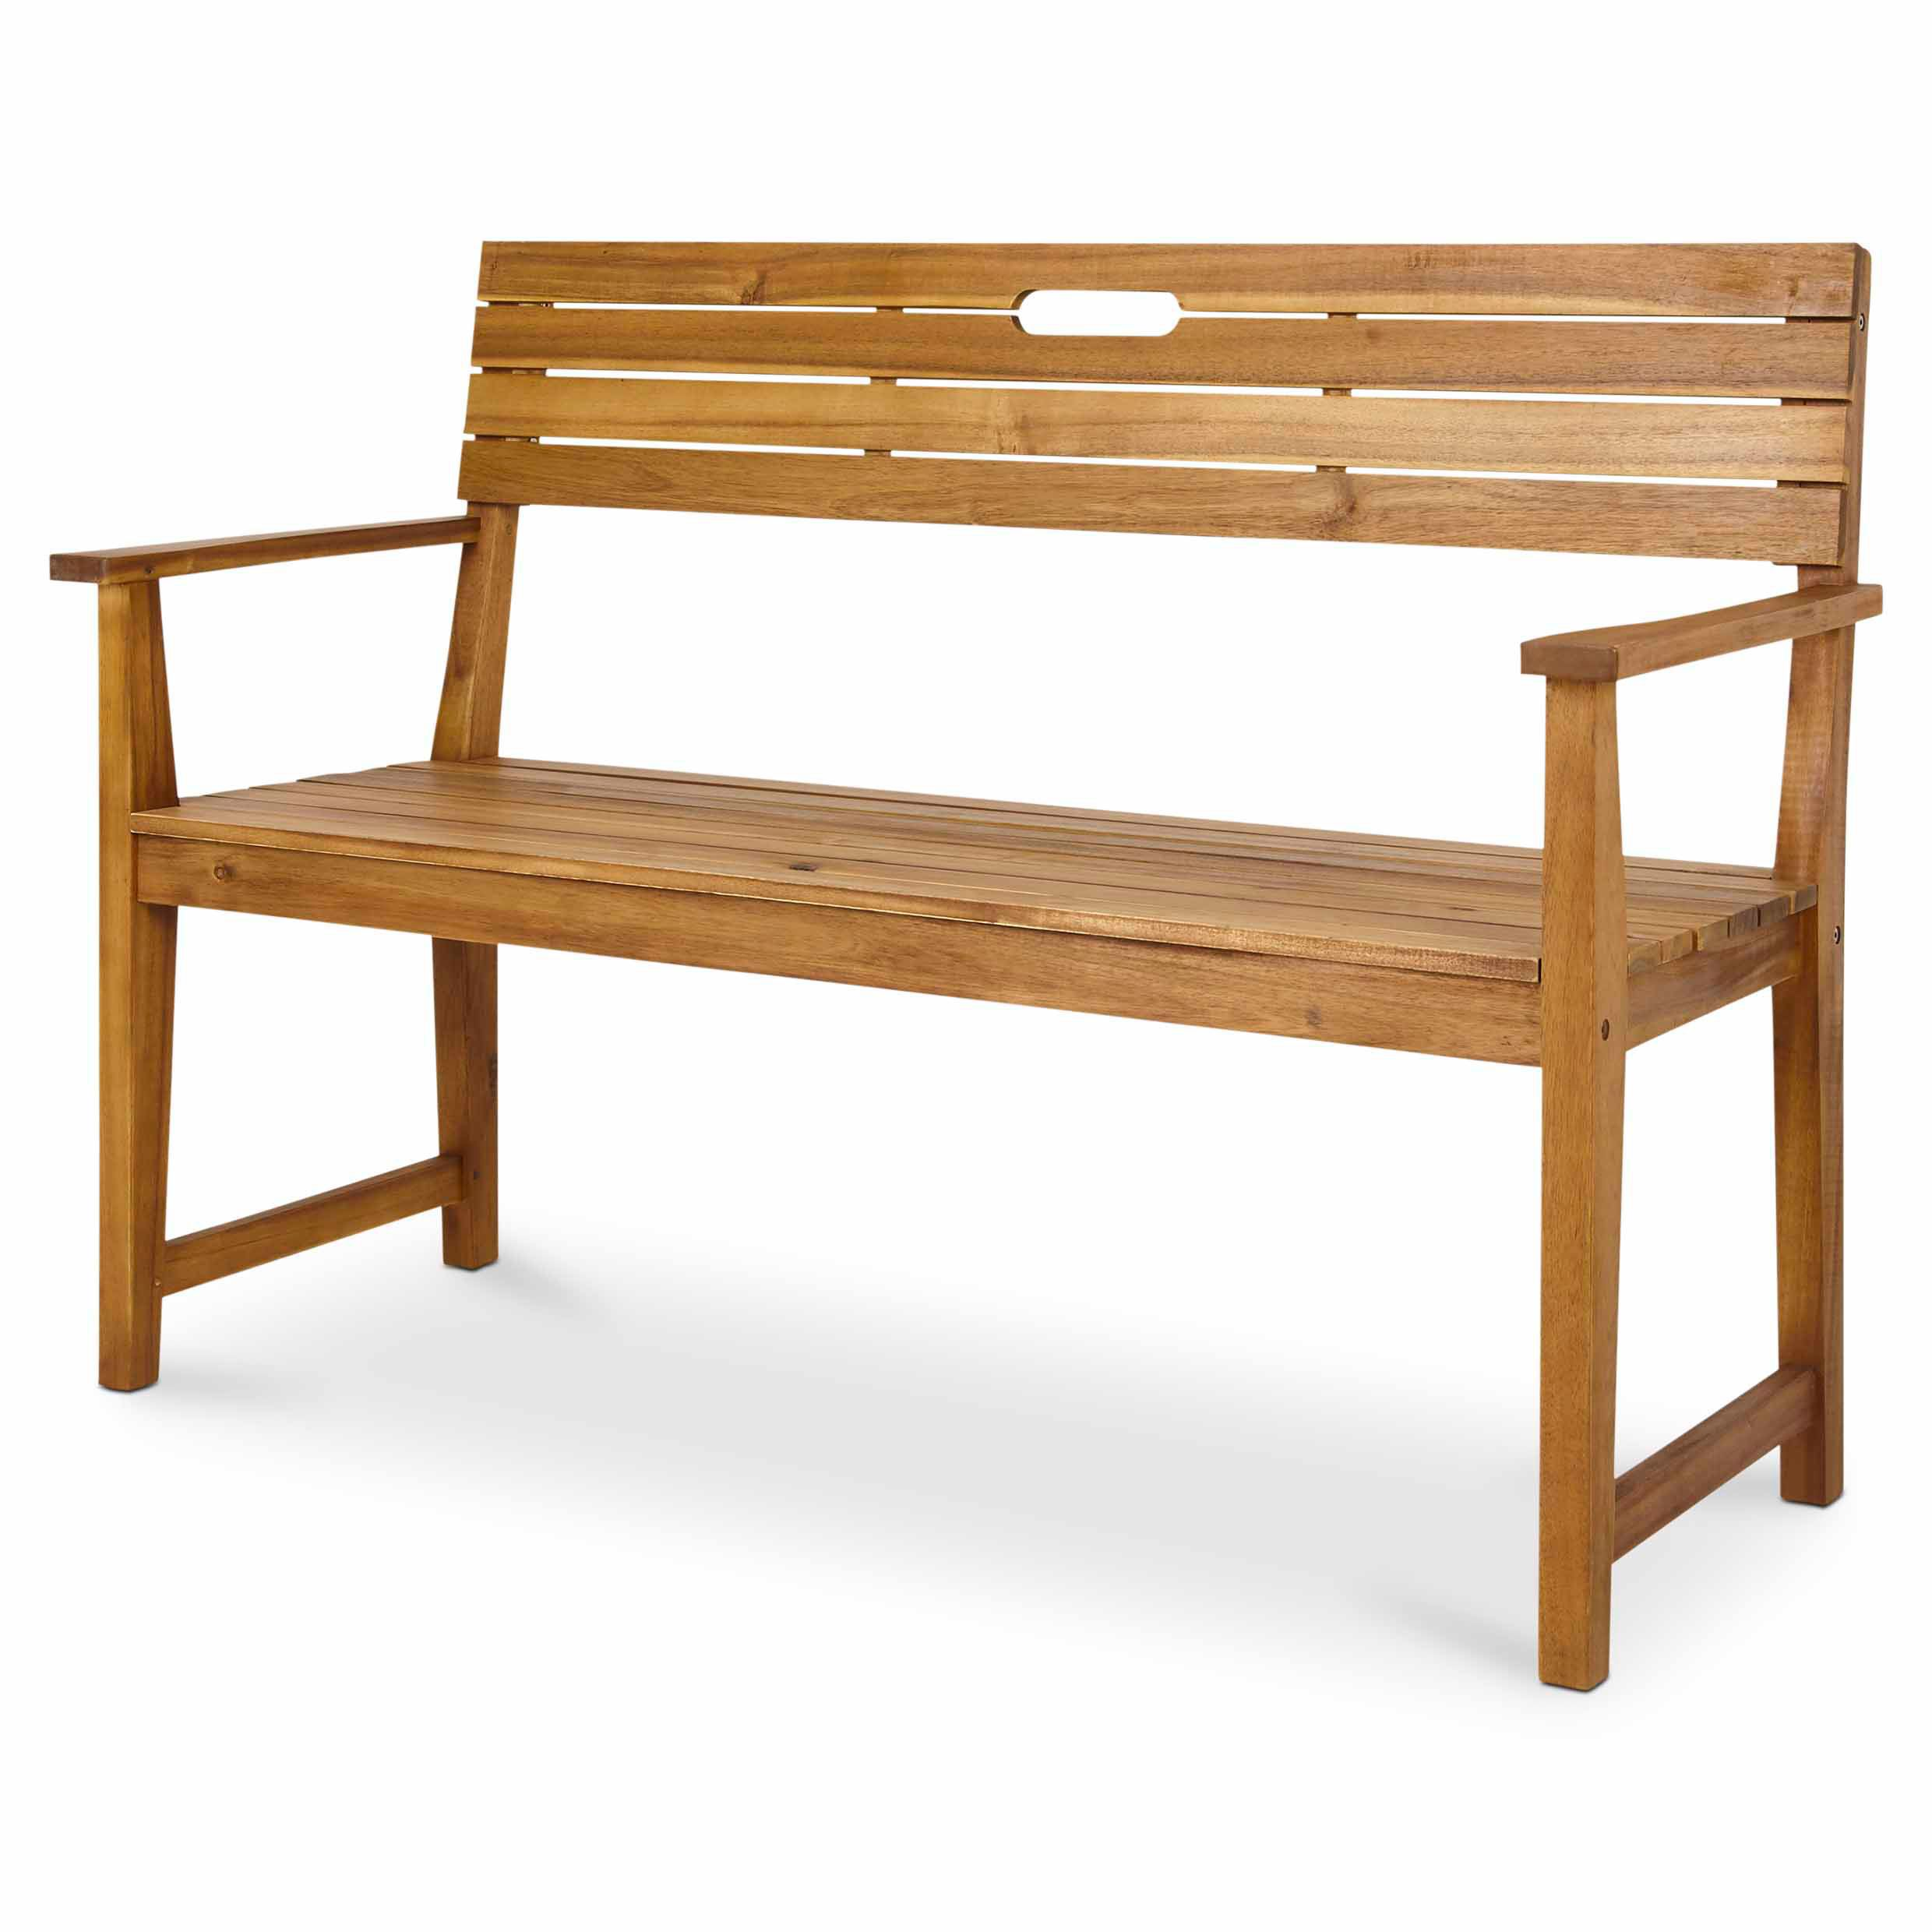 Denia Wooden Natural Bench Departments Diy At B Q